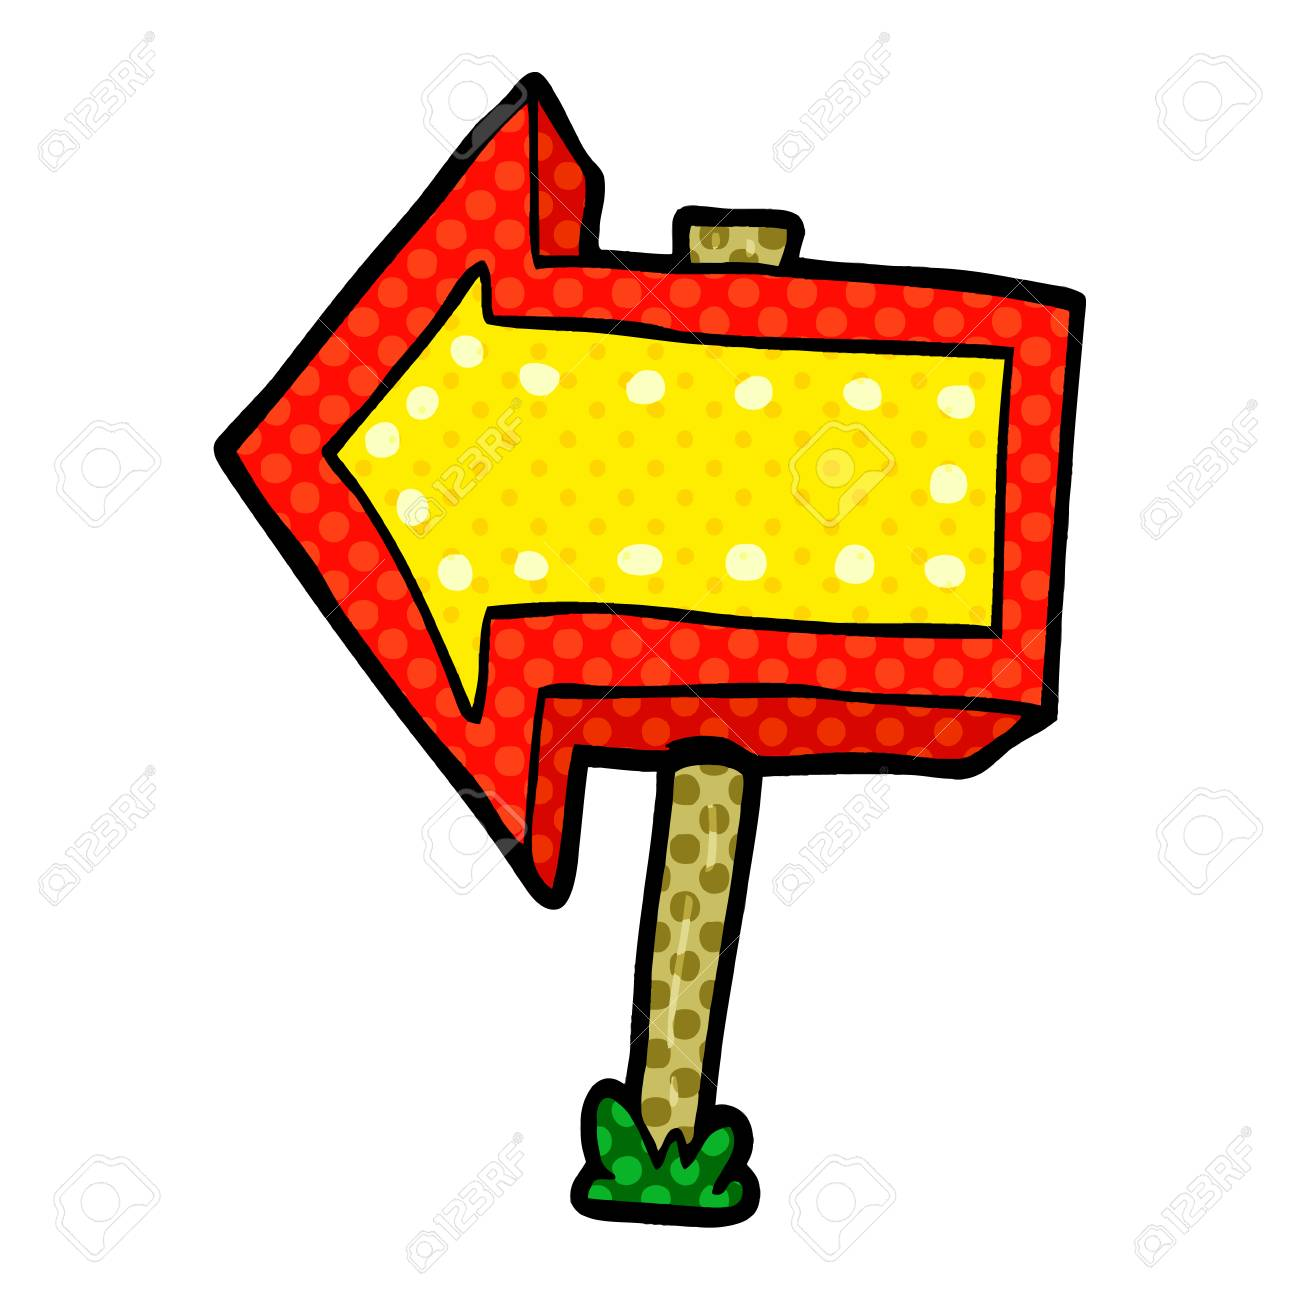 cartoon pointing arrow sign royalty free cliparts vectors and